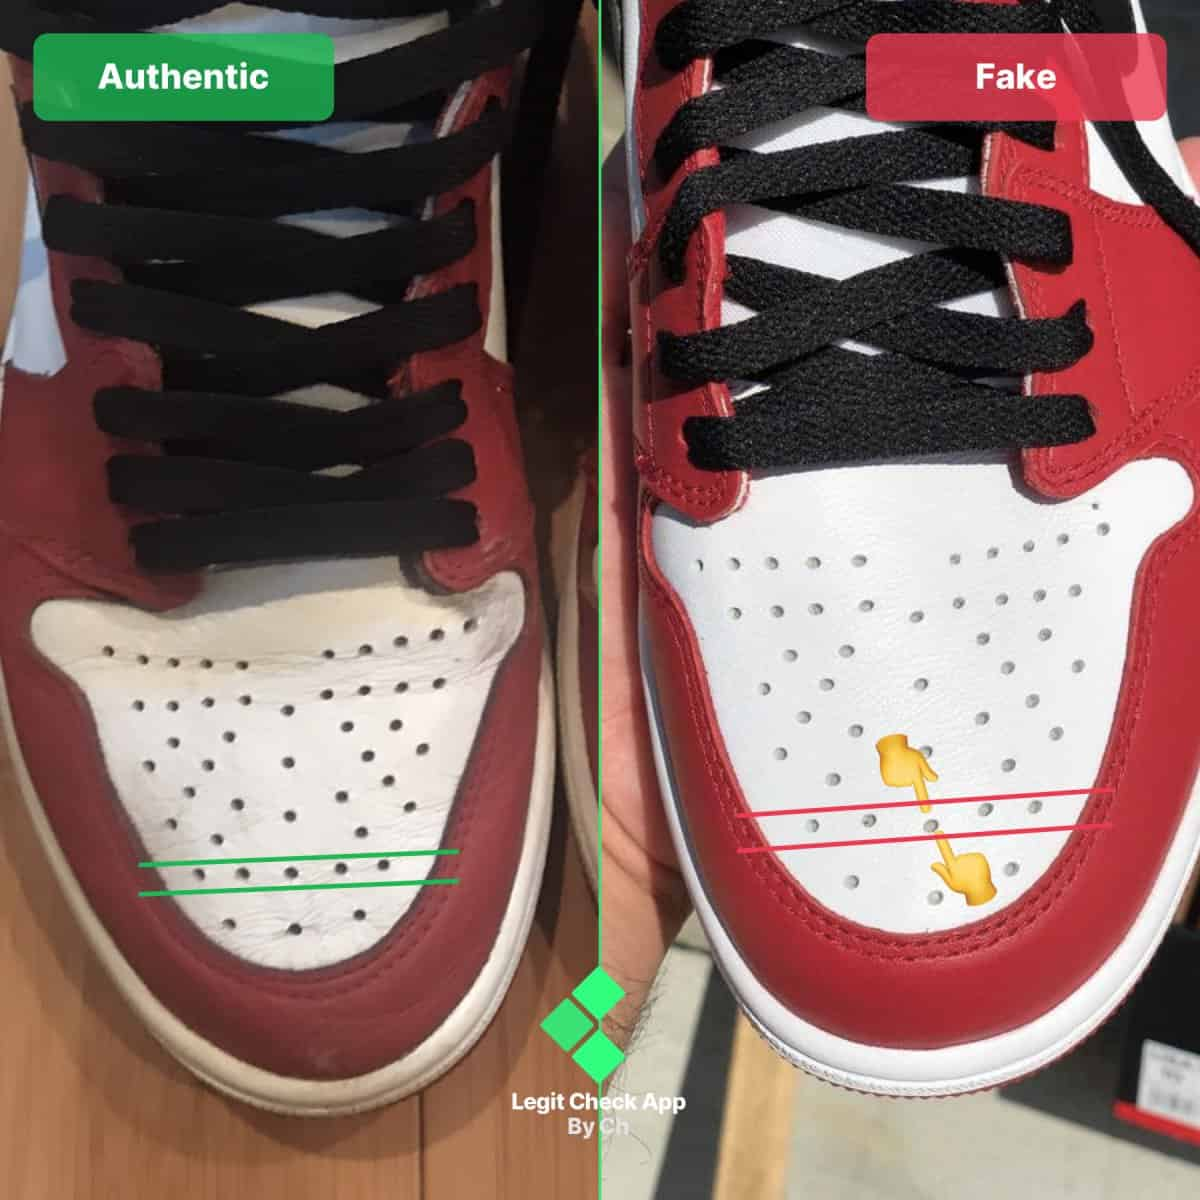 how to spot fake aj1 chicago